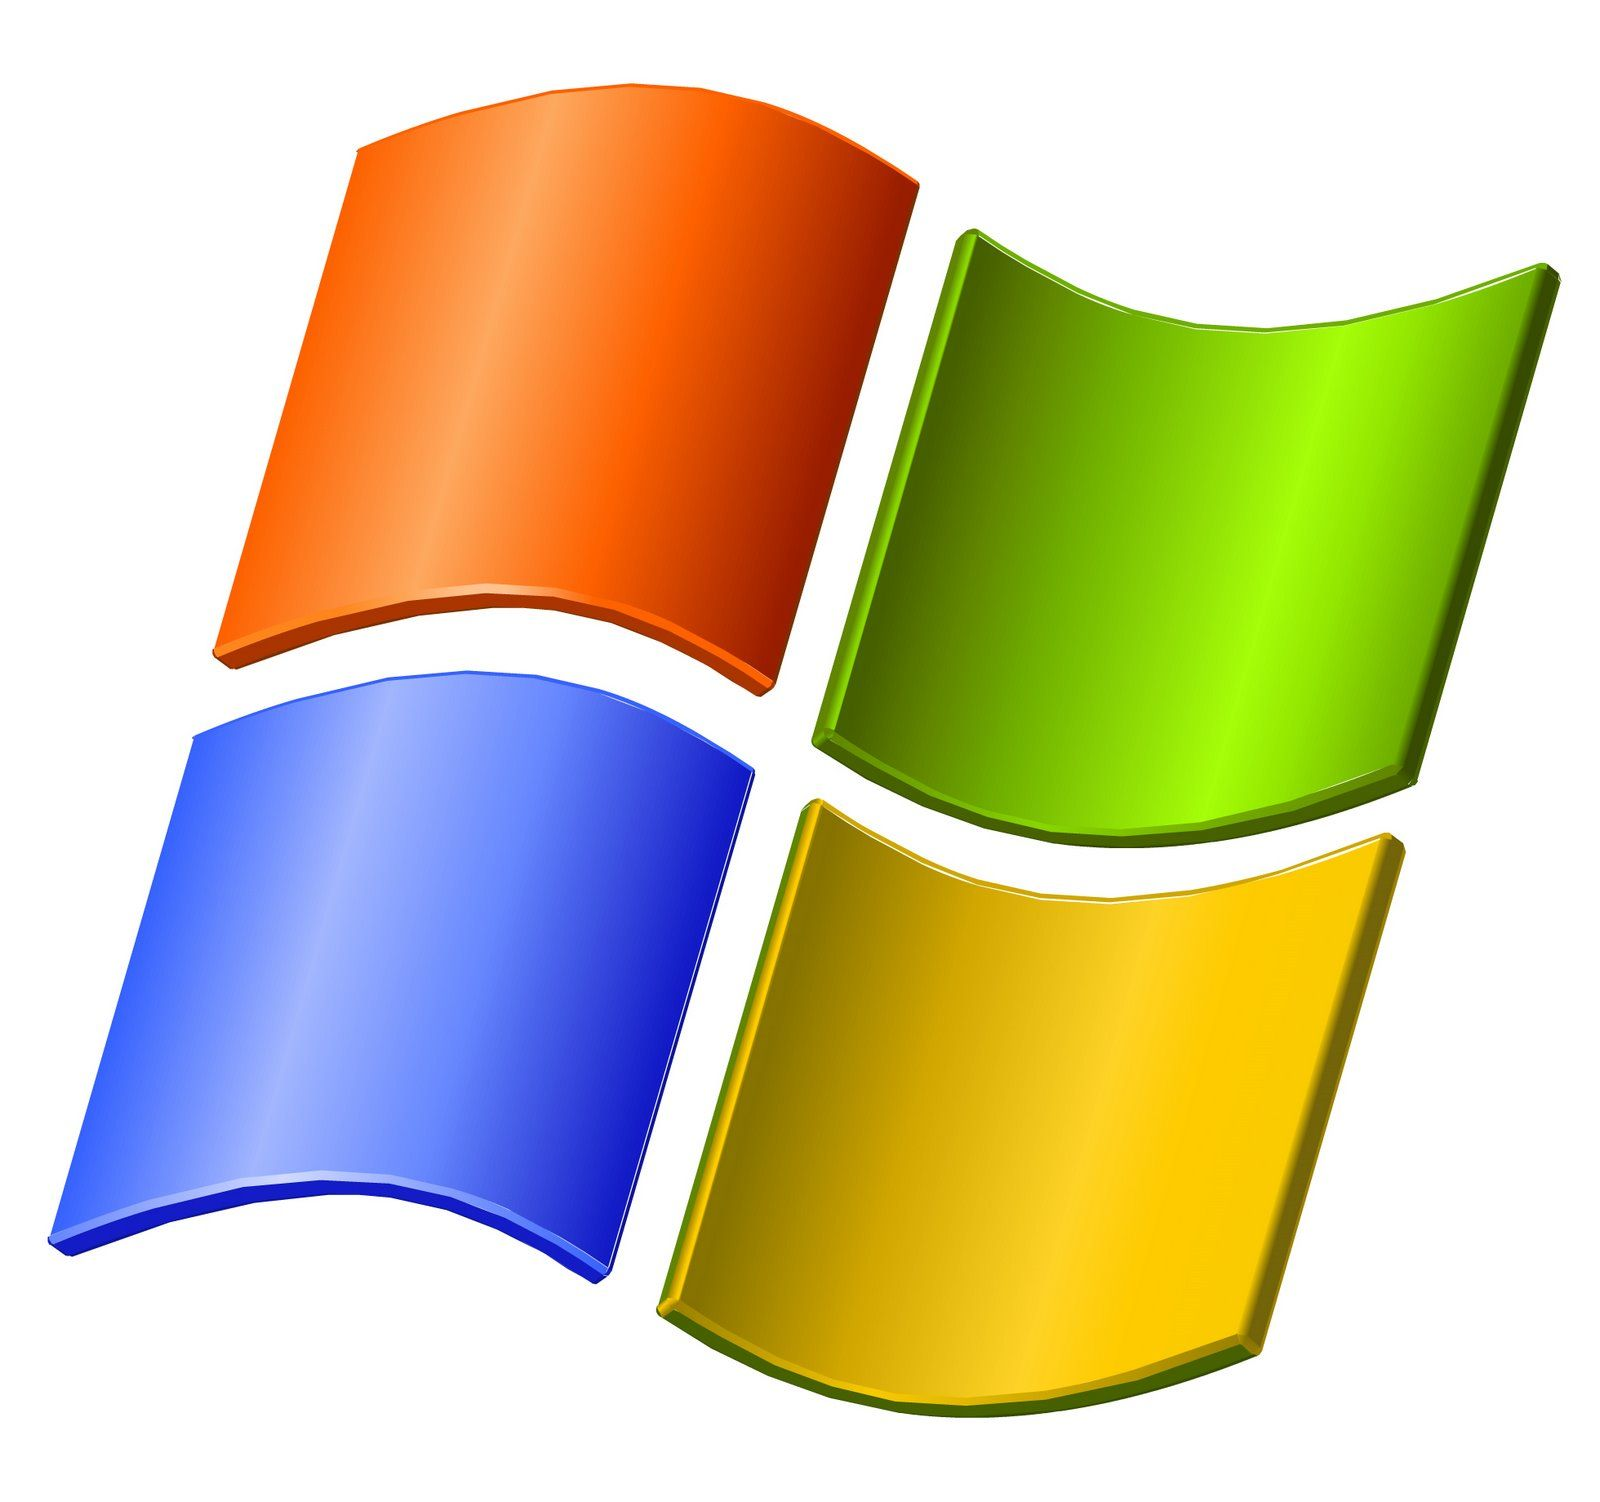 Microsoft Delivers And Is Likely To Continue To Do So Windows Xp Microsoft Microsoft Windows